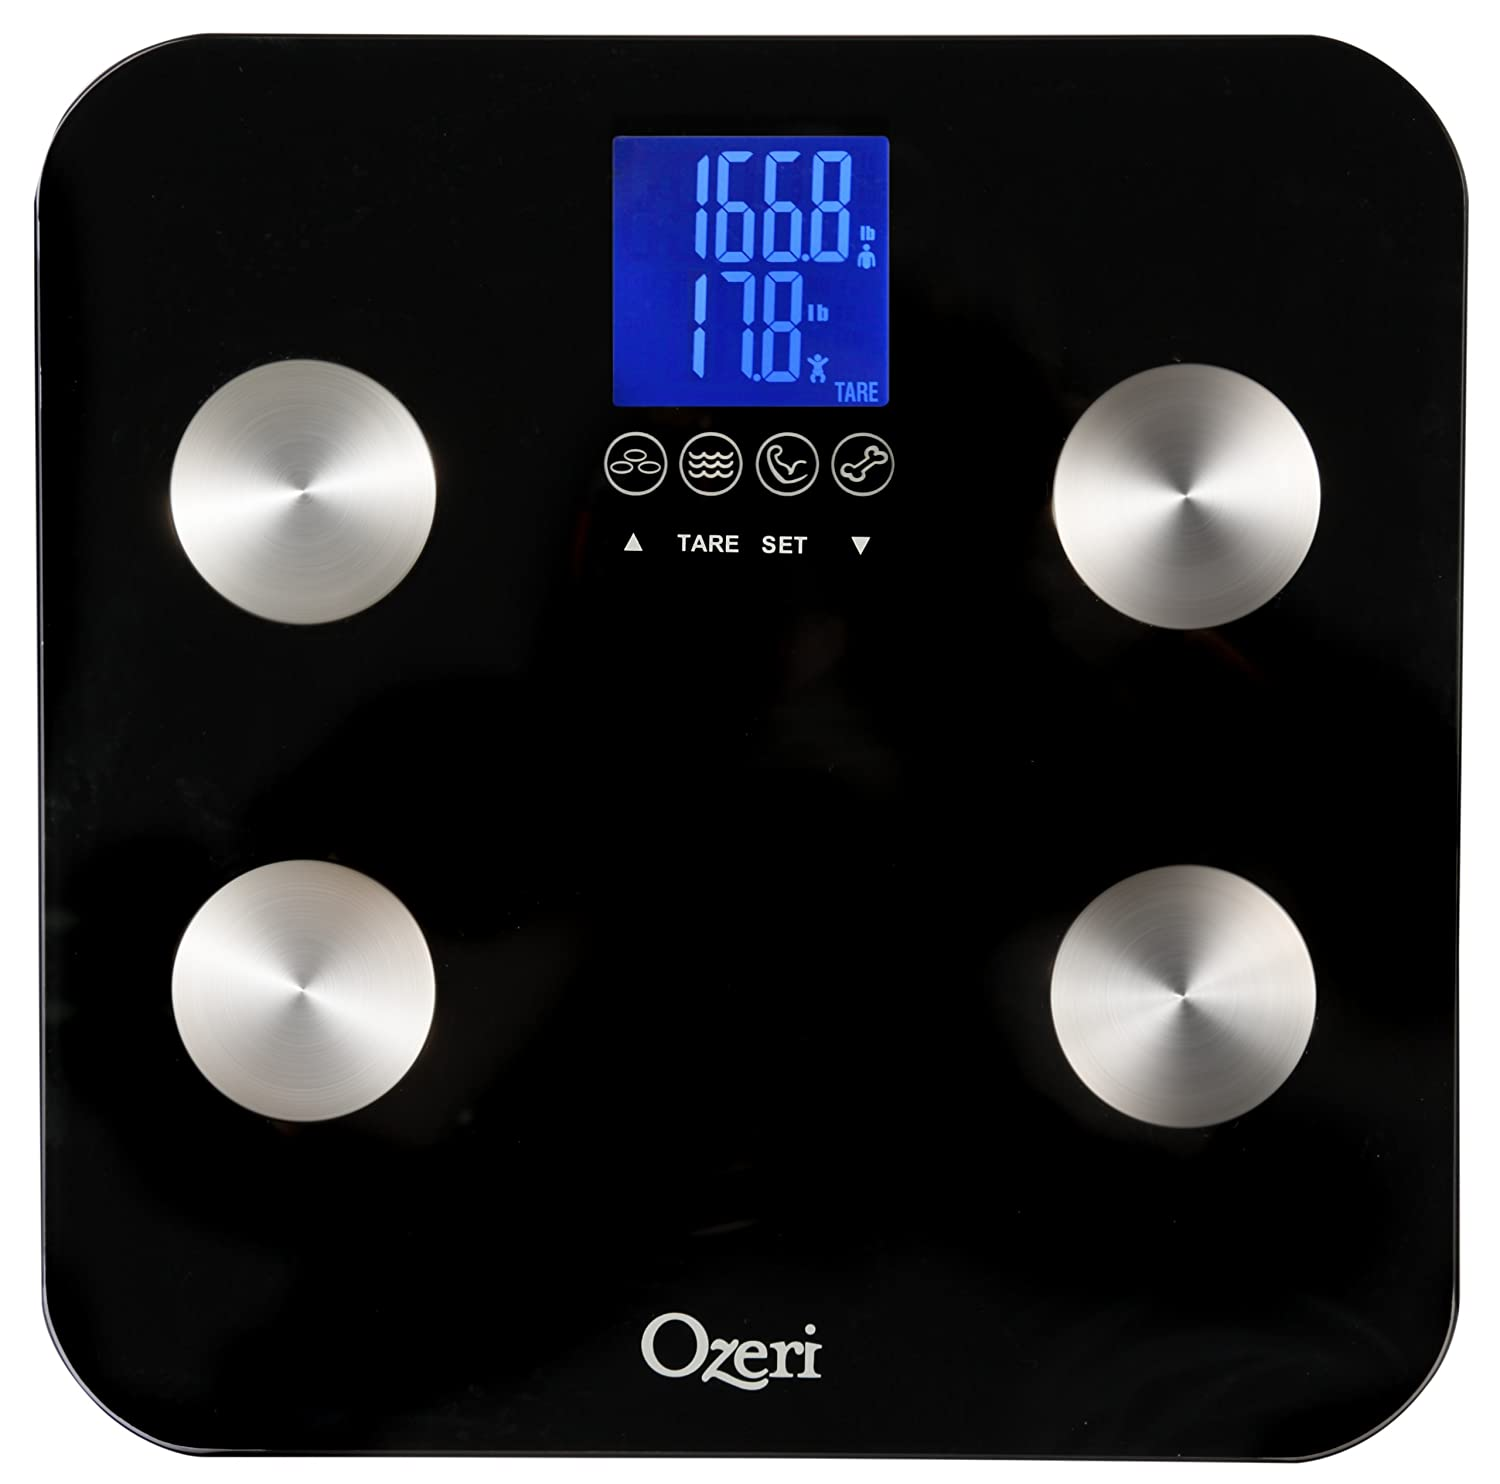 Ozeri Touch 200 KG / 440 LBS Total Body Bathroom Scale - Measures Weight, Body Fat, Hydration, Muscle and Bone Mass with Auto Recognition and Infant Tare Technology